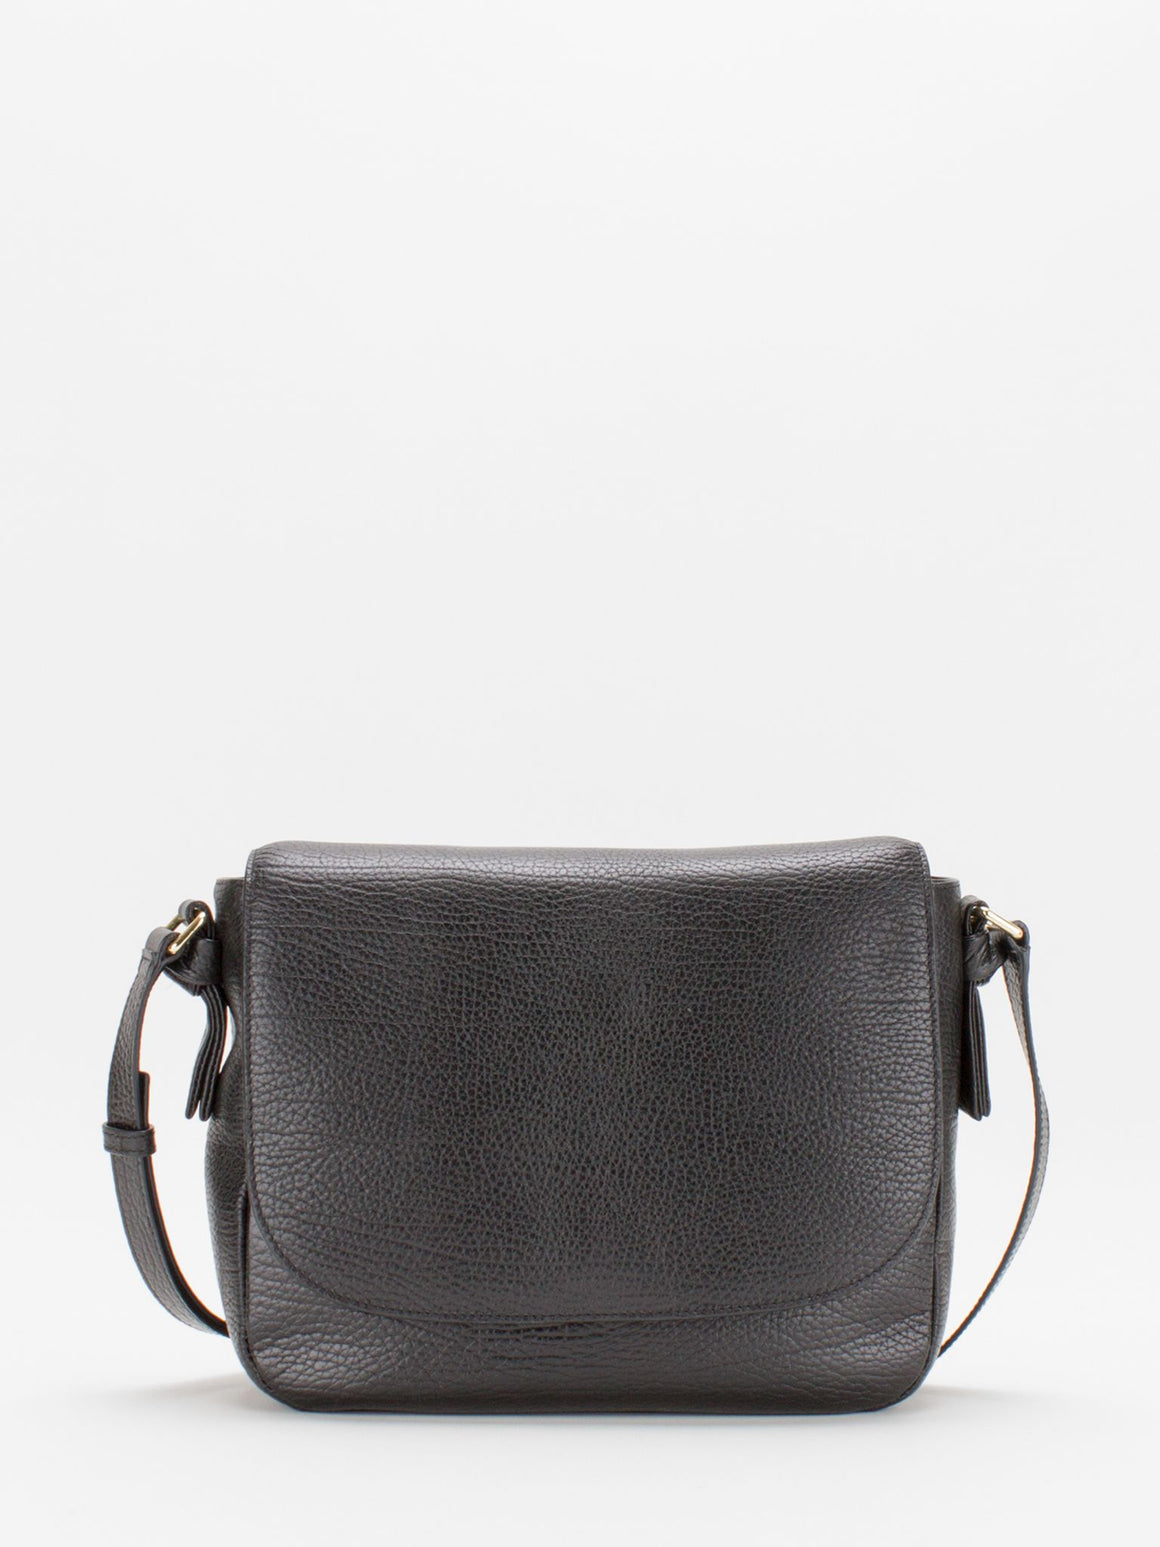 Belle Leather Saddle Bag - Black